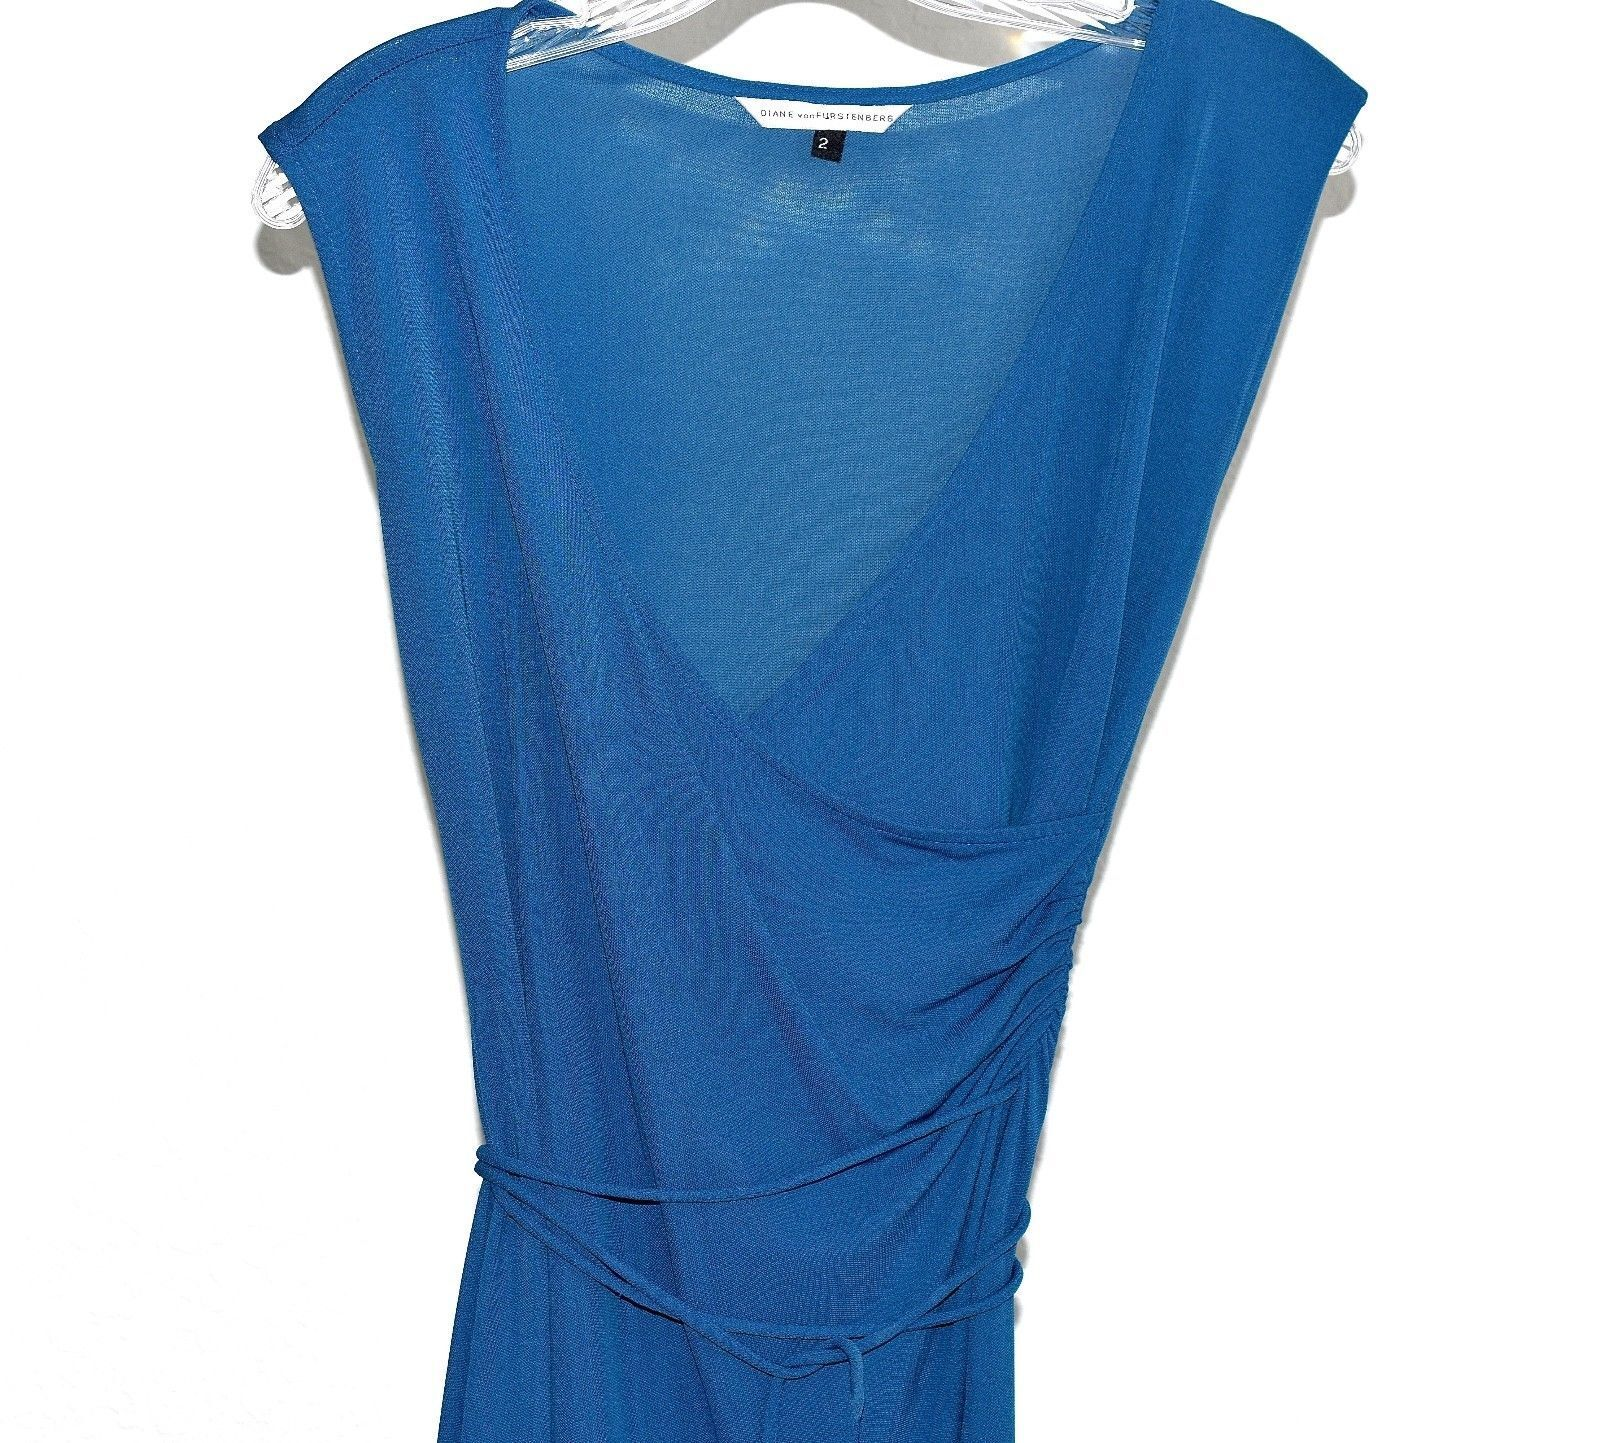 Diane Von Furstenberg Sleeveless Teal Dress sz 2 2 2 f7e01f